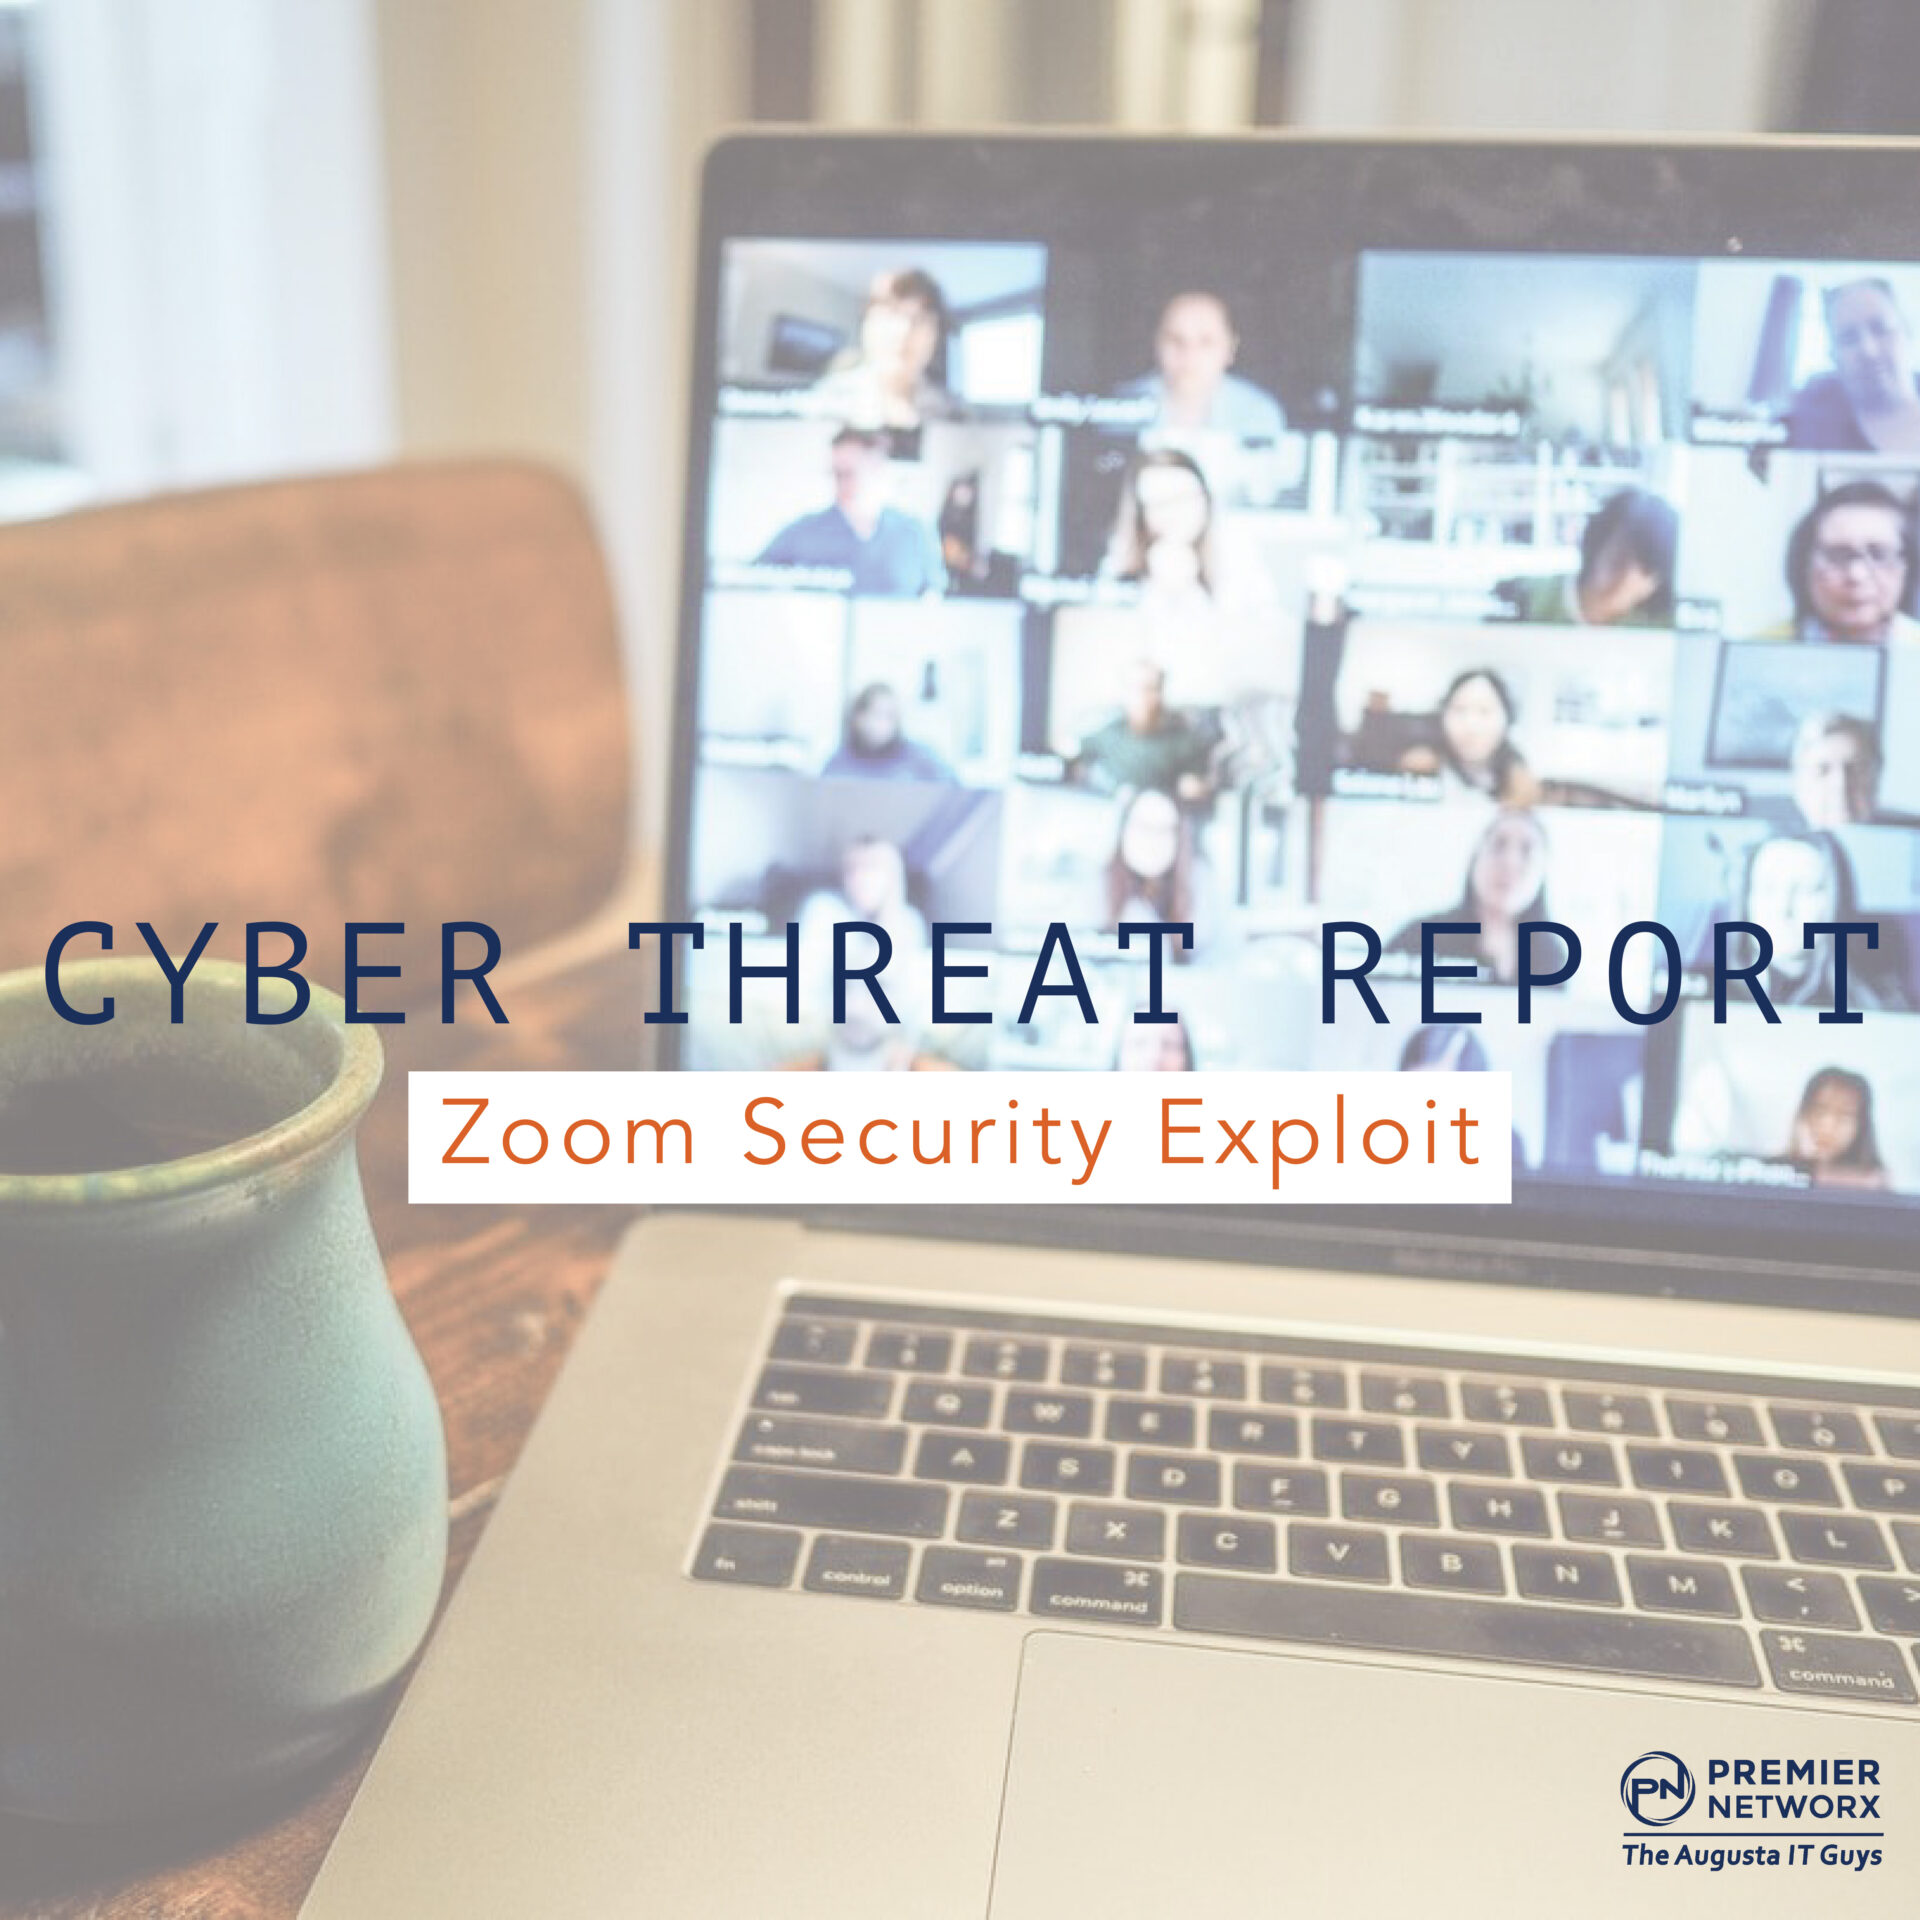 Premier Networx Cyber Threat Alert Zoom